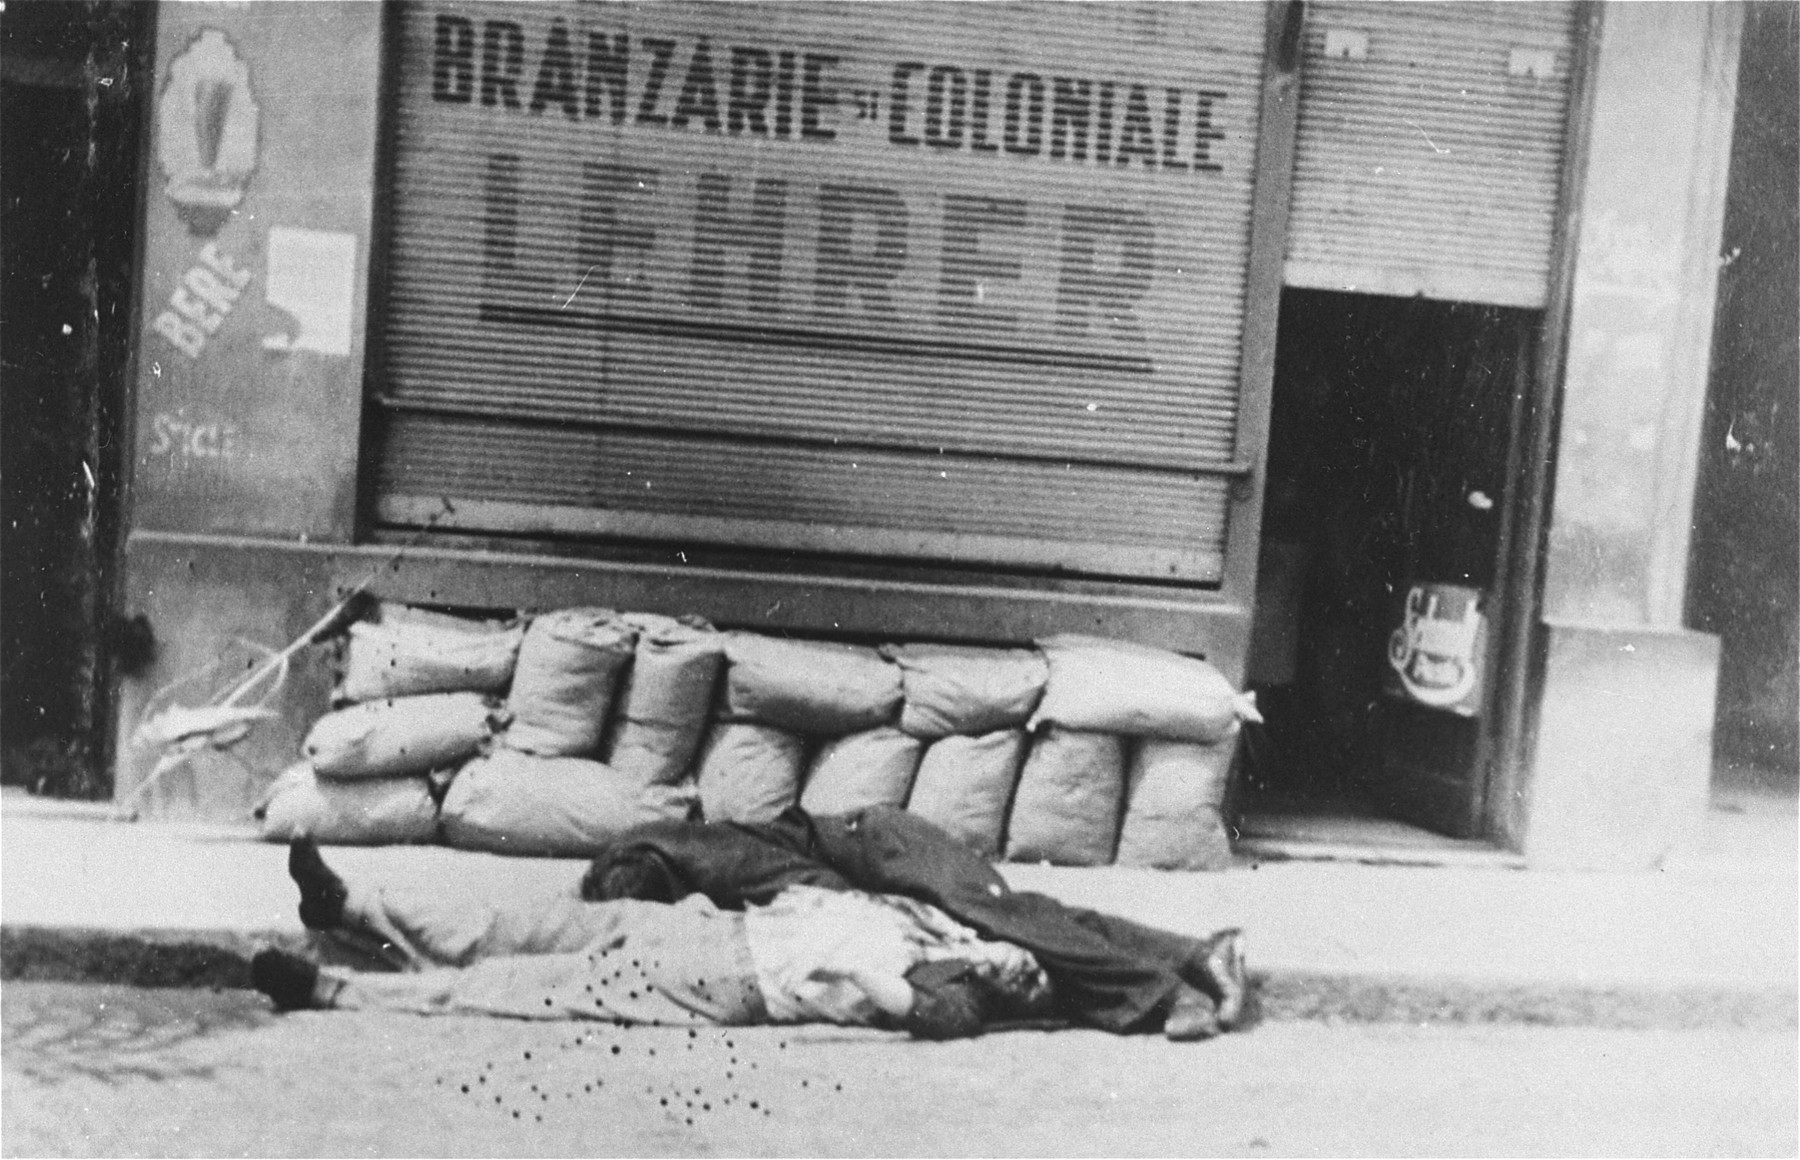 The bodies of Jews killed during the Iasi pogrom lie on the pavement in front of a Jewish-owned business.